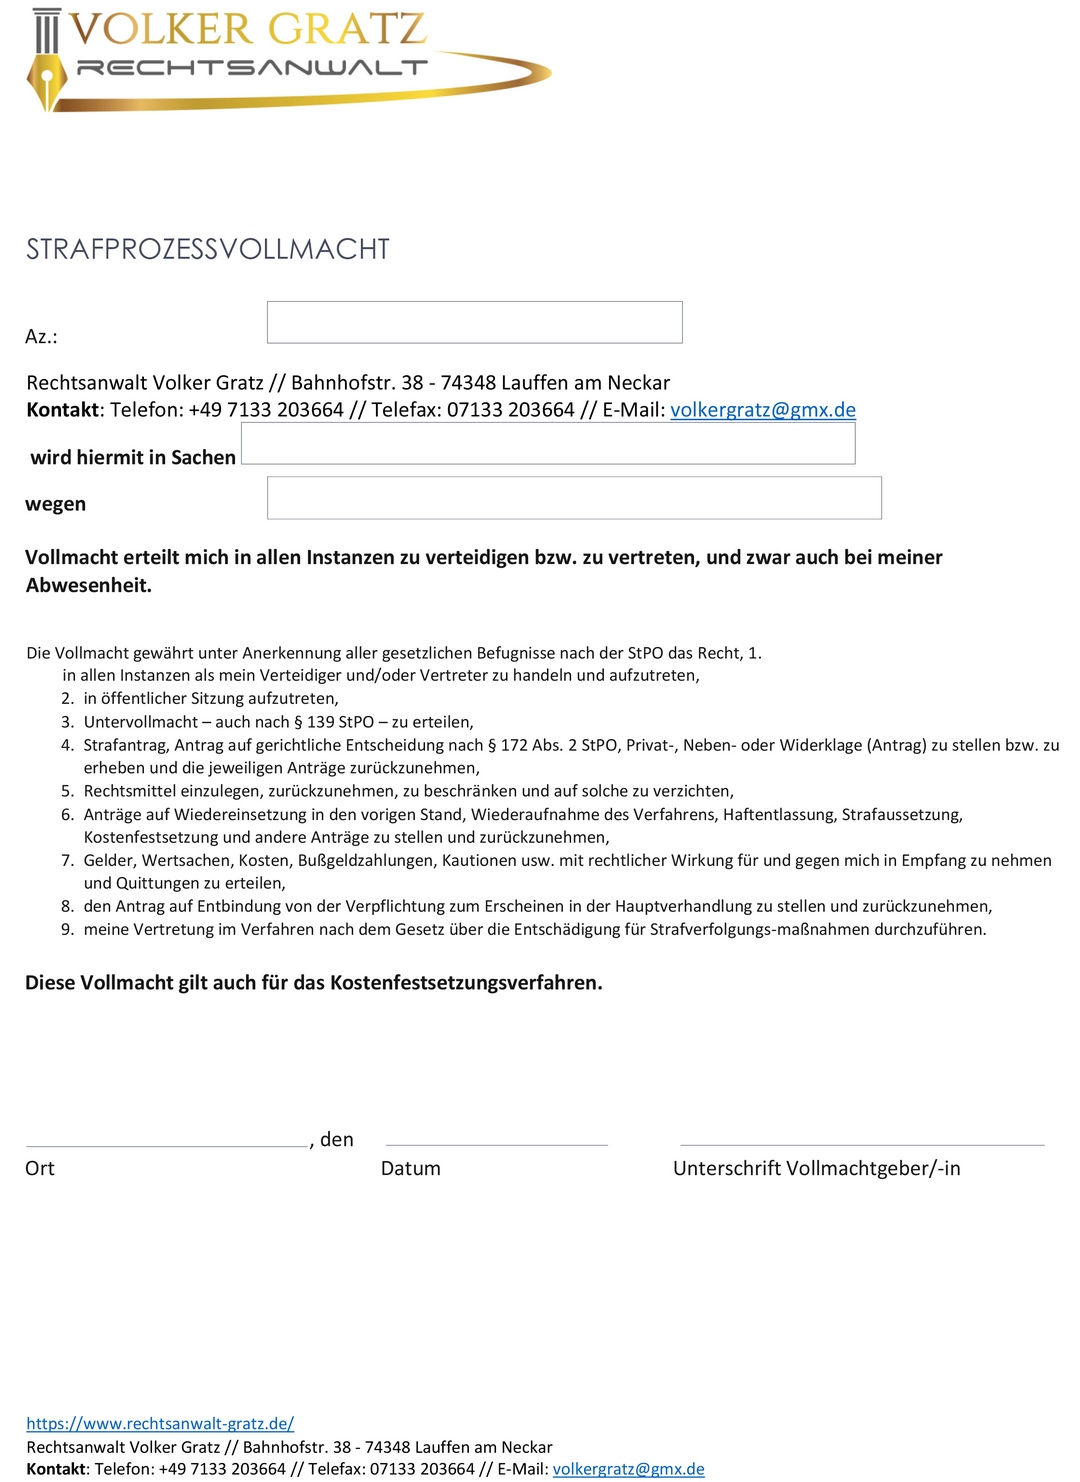 Vollmacht download